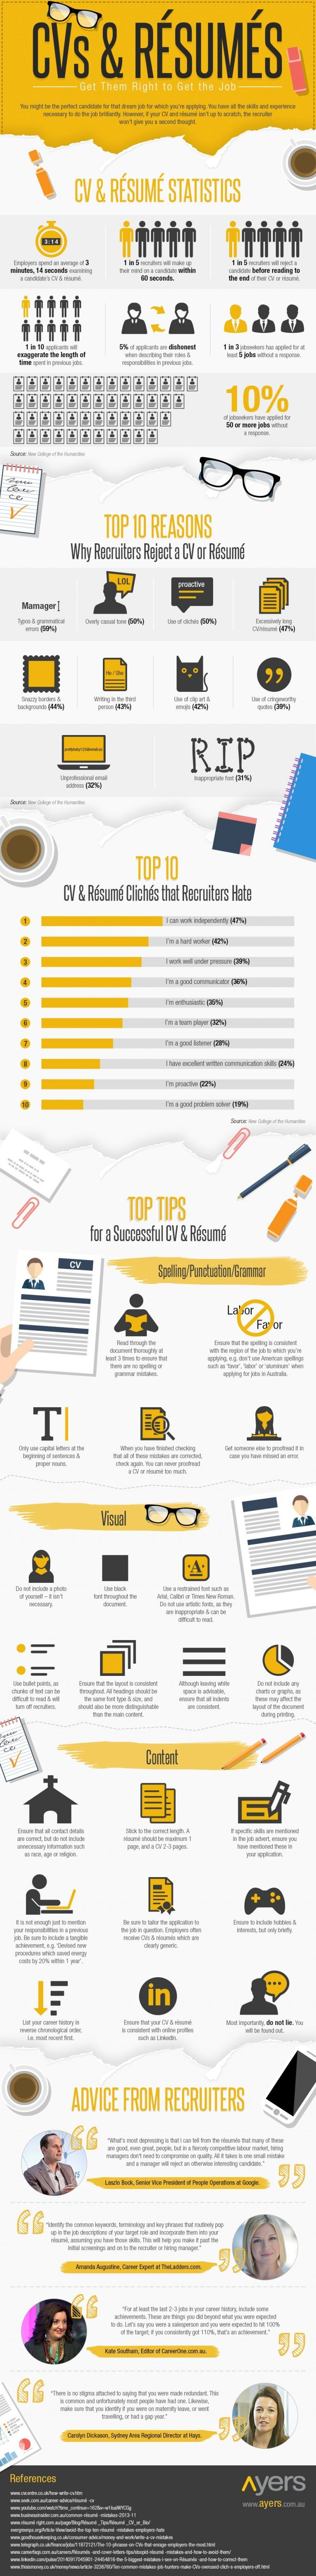 cvs resumes get them right to get the job infographic e